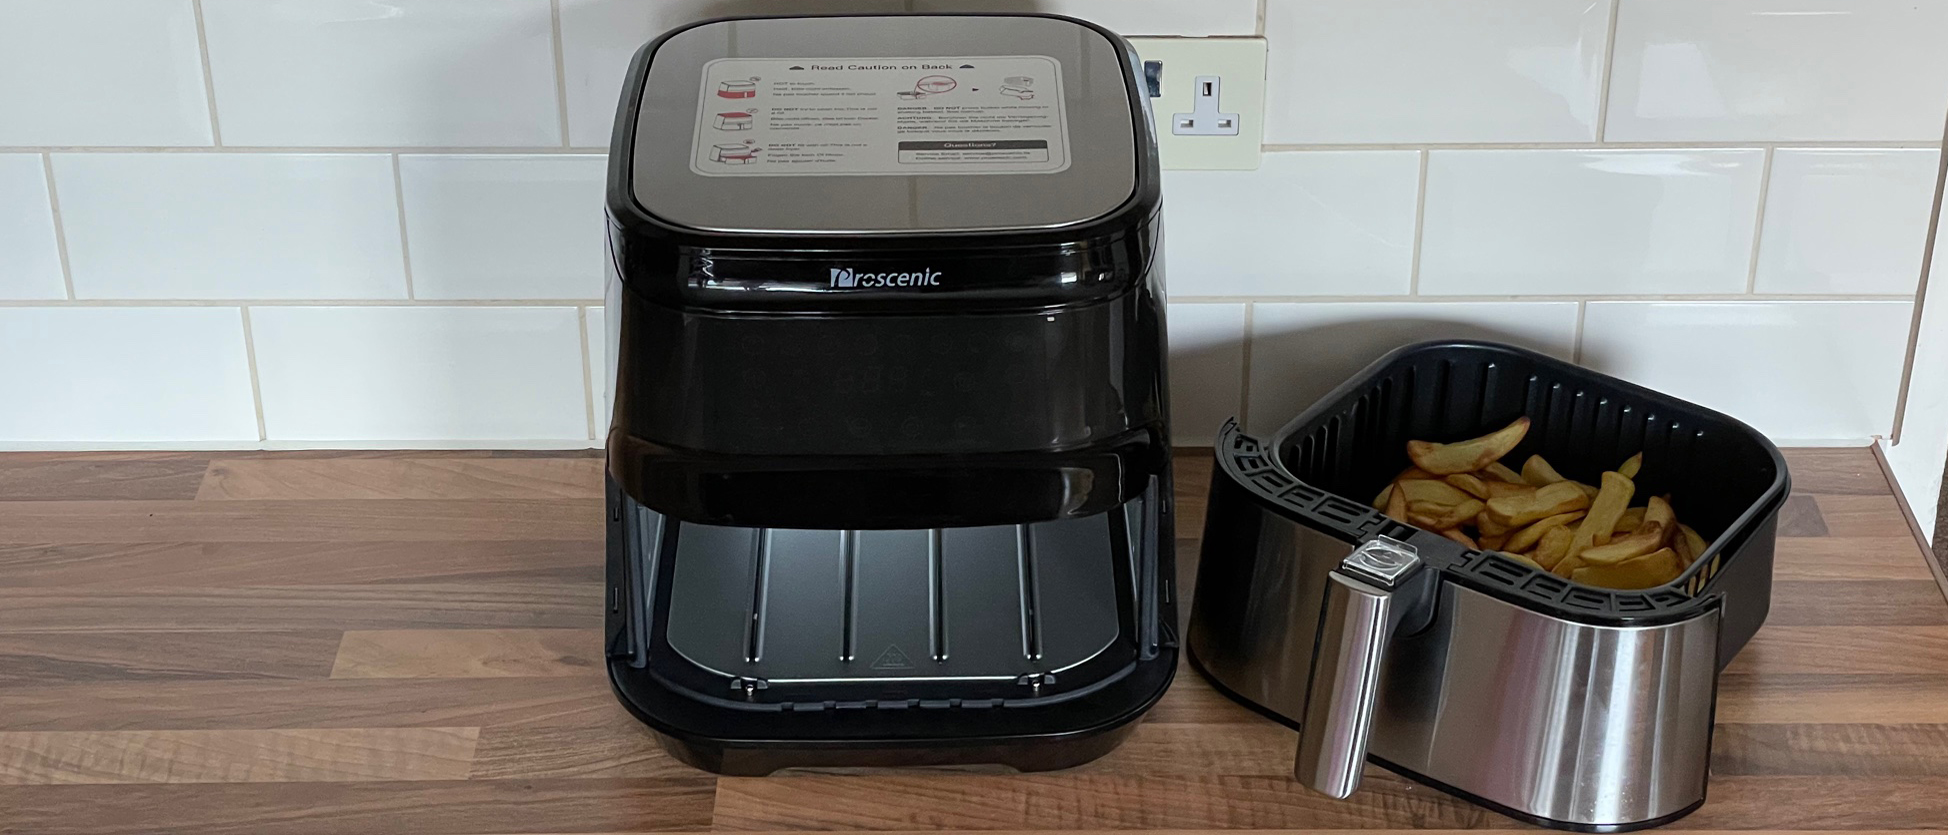 Proscenic T21 air fryer review